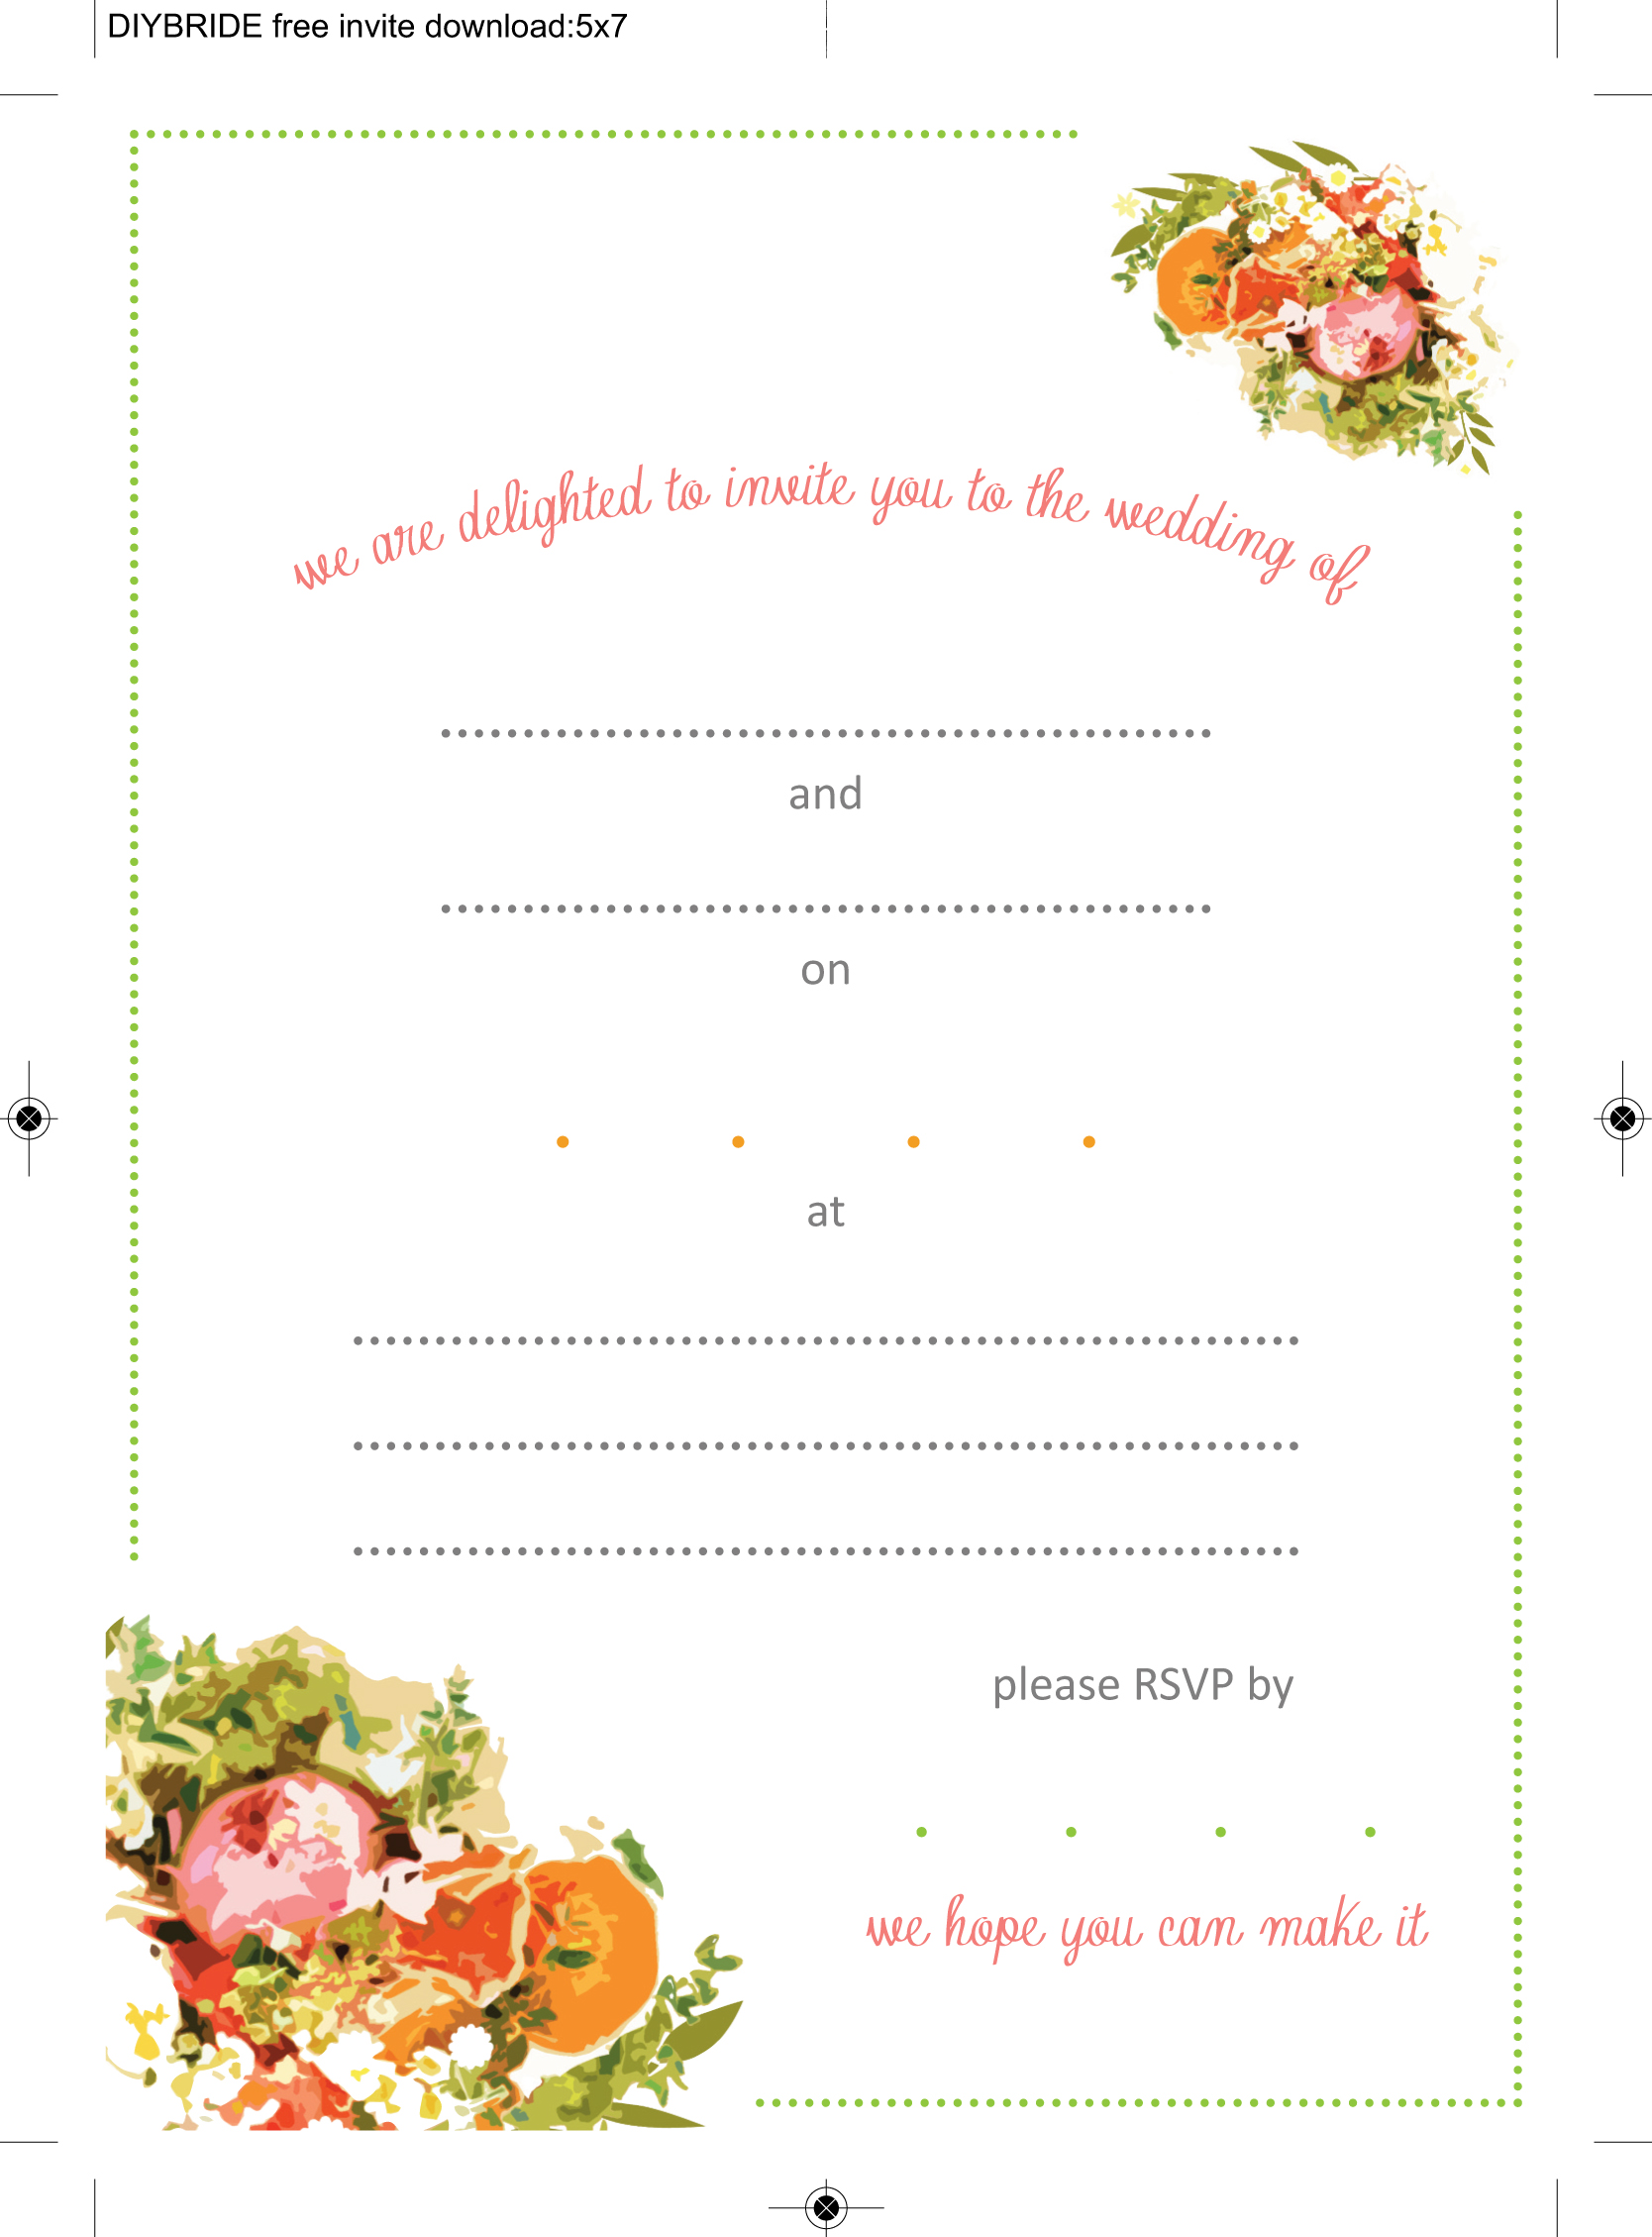 Wedding Invitation Templates That Are Cute And Easy to Make – Invitation Templates for Free